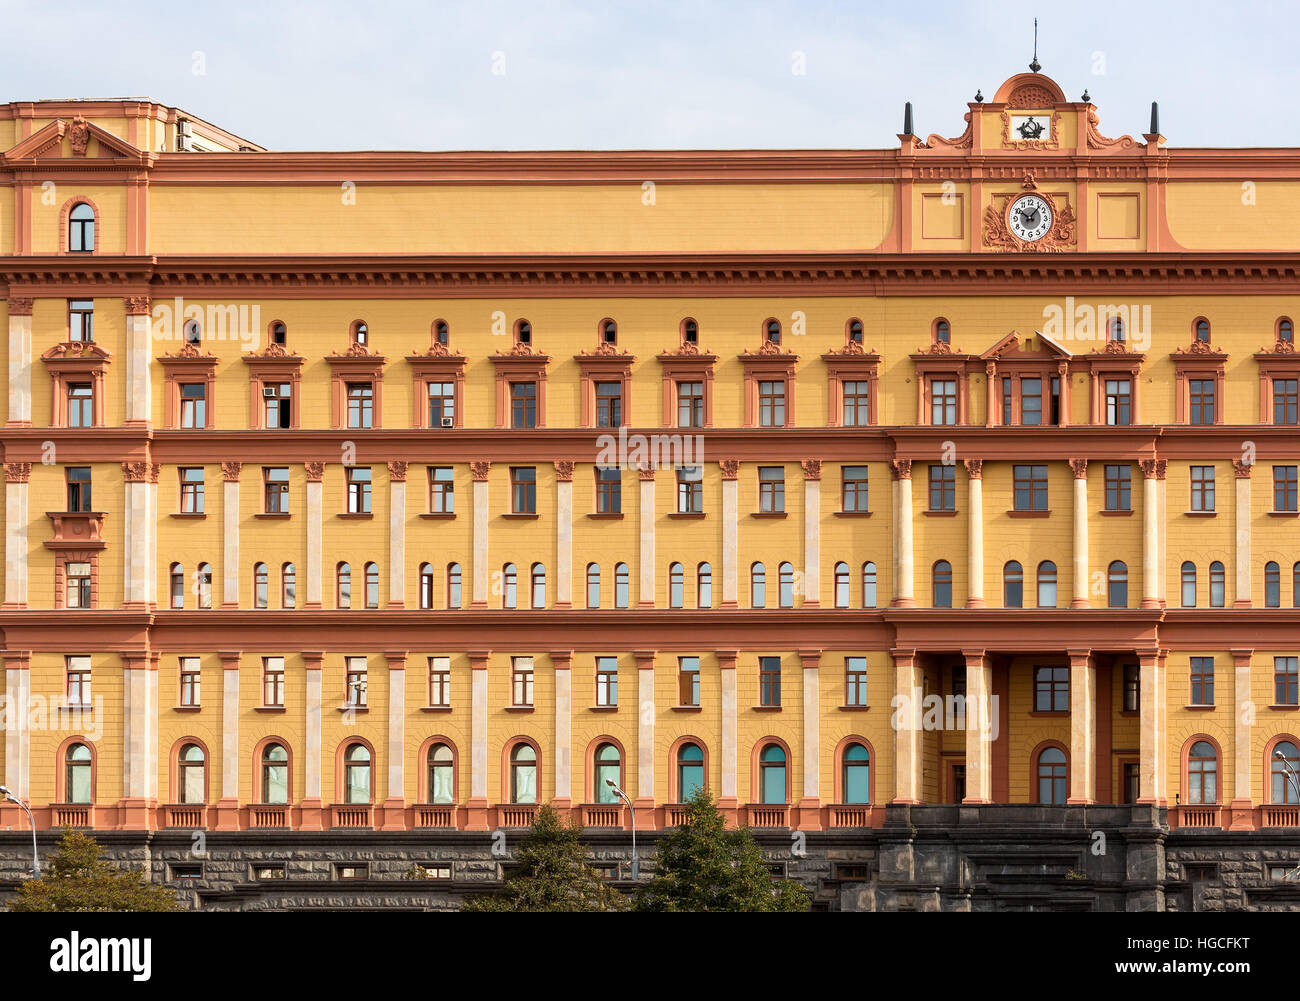 The Lubyanka Building, former KGB headquarters in Moscow, Russia. - Stock Image